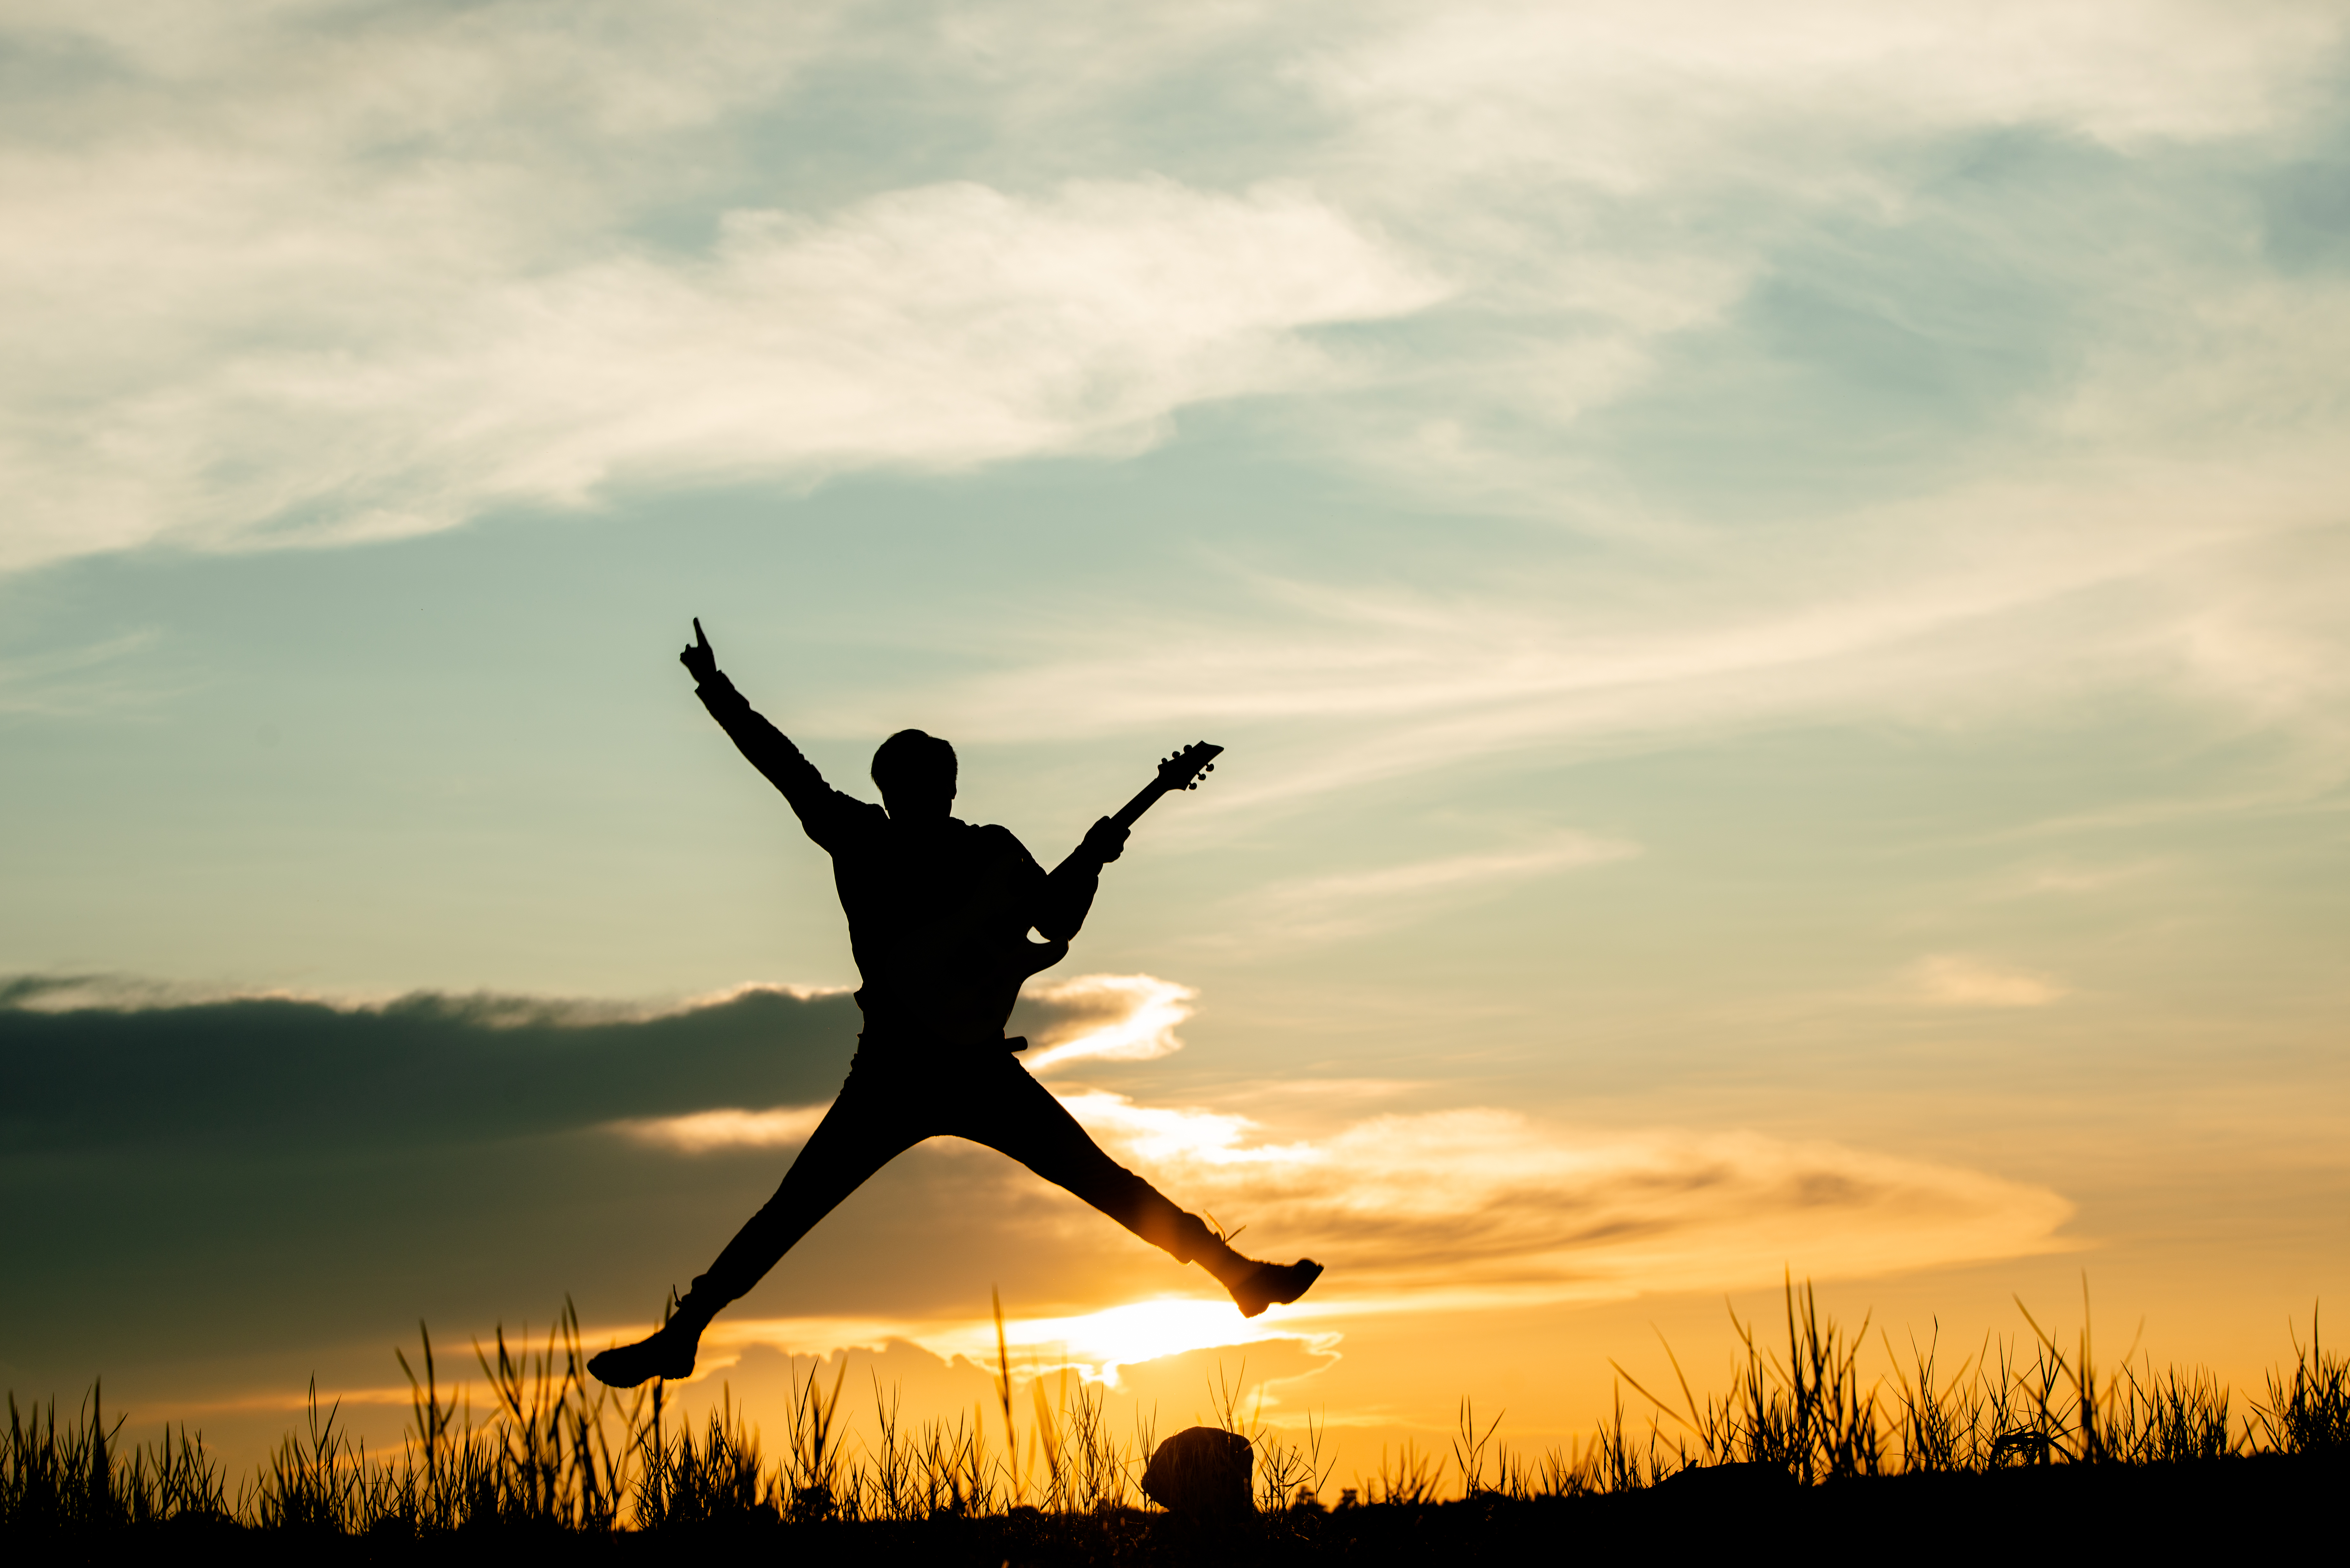 Musician man jumps while playing